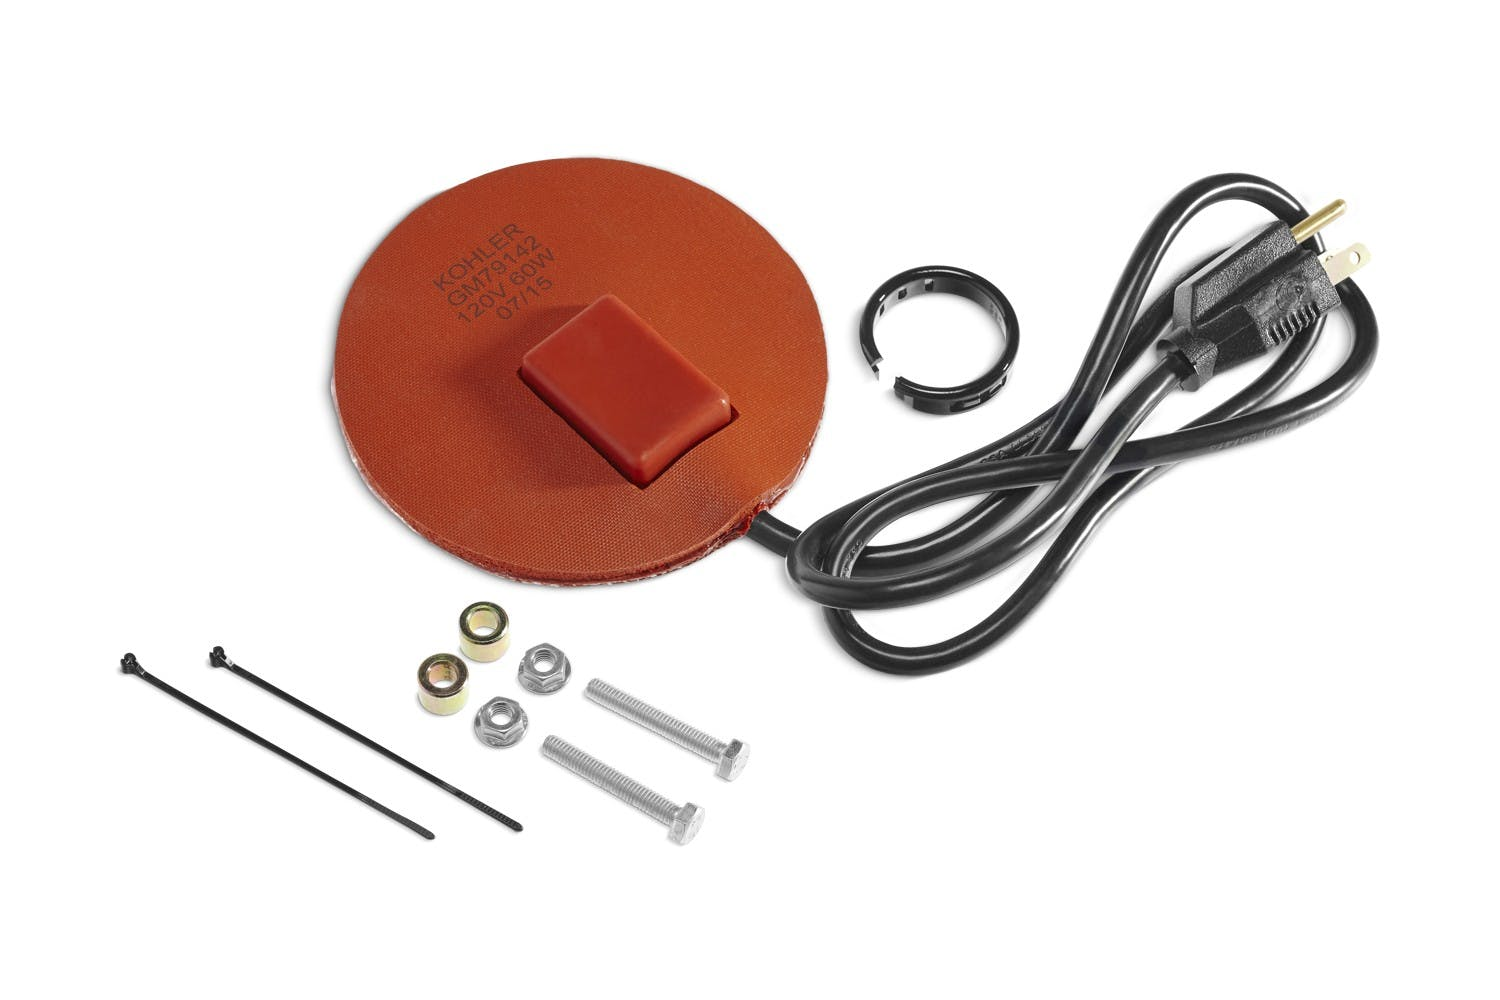 Fuel Regulator Heater Kit, 120V, 20 kW